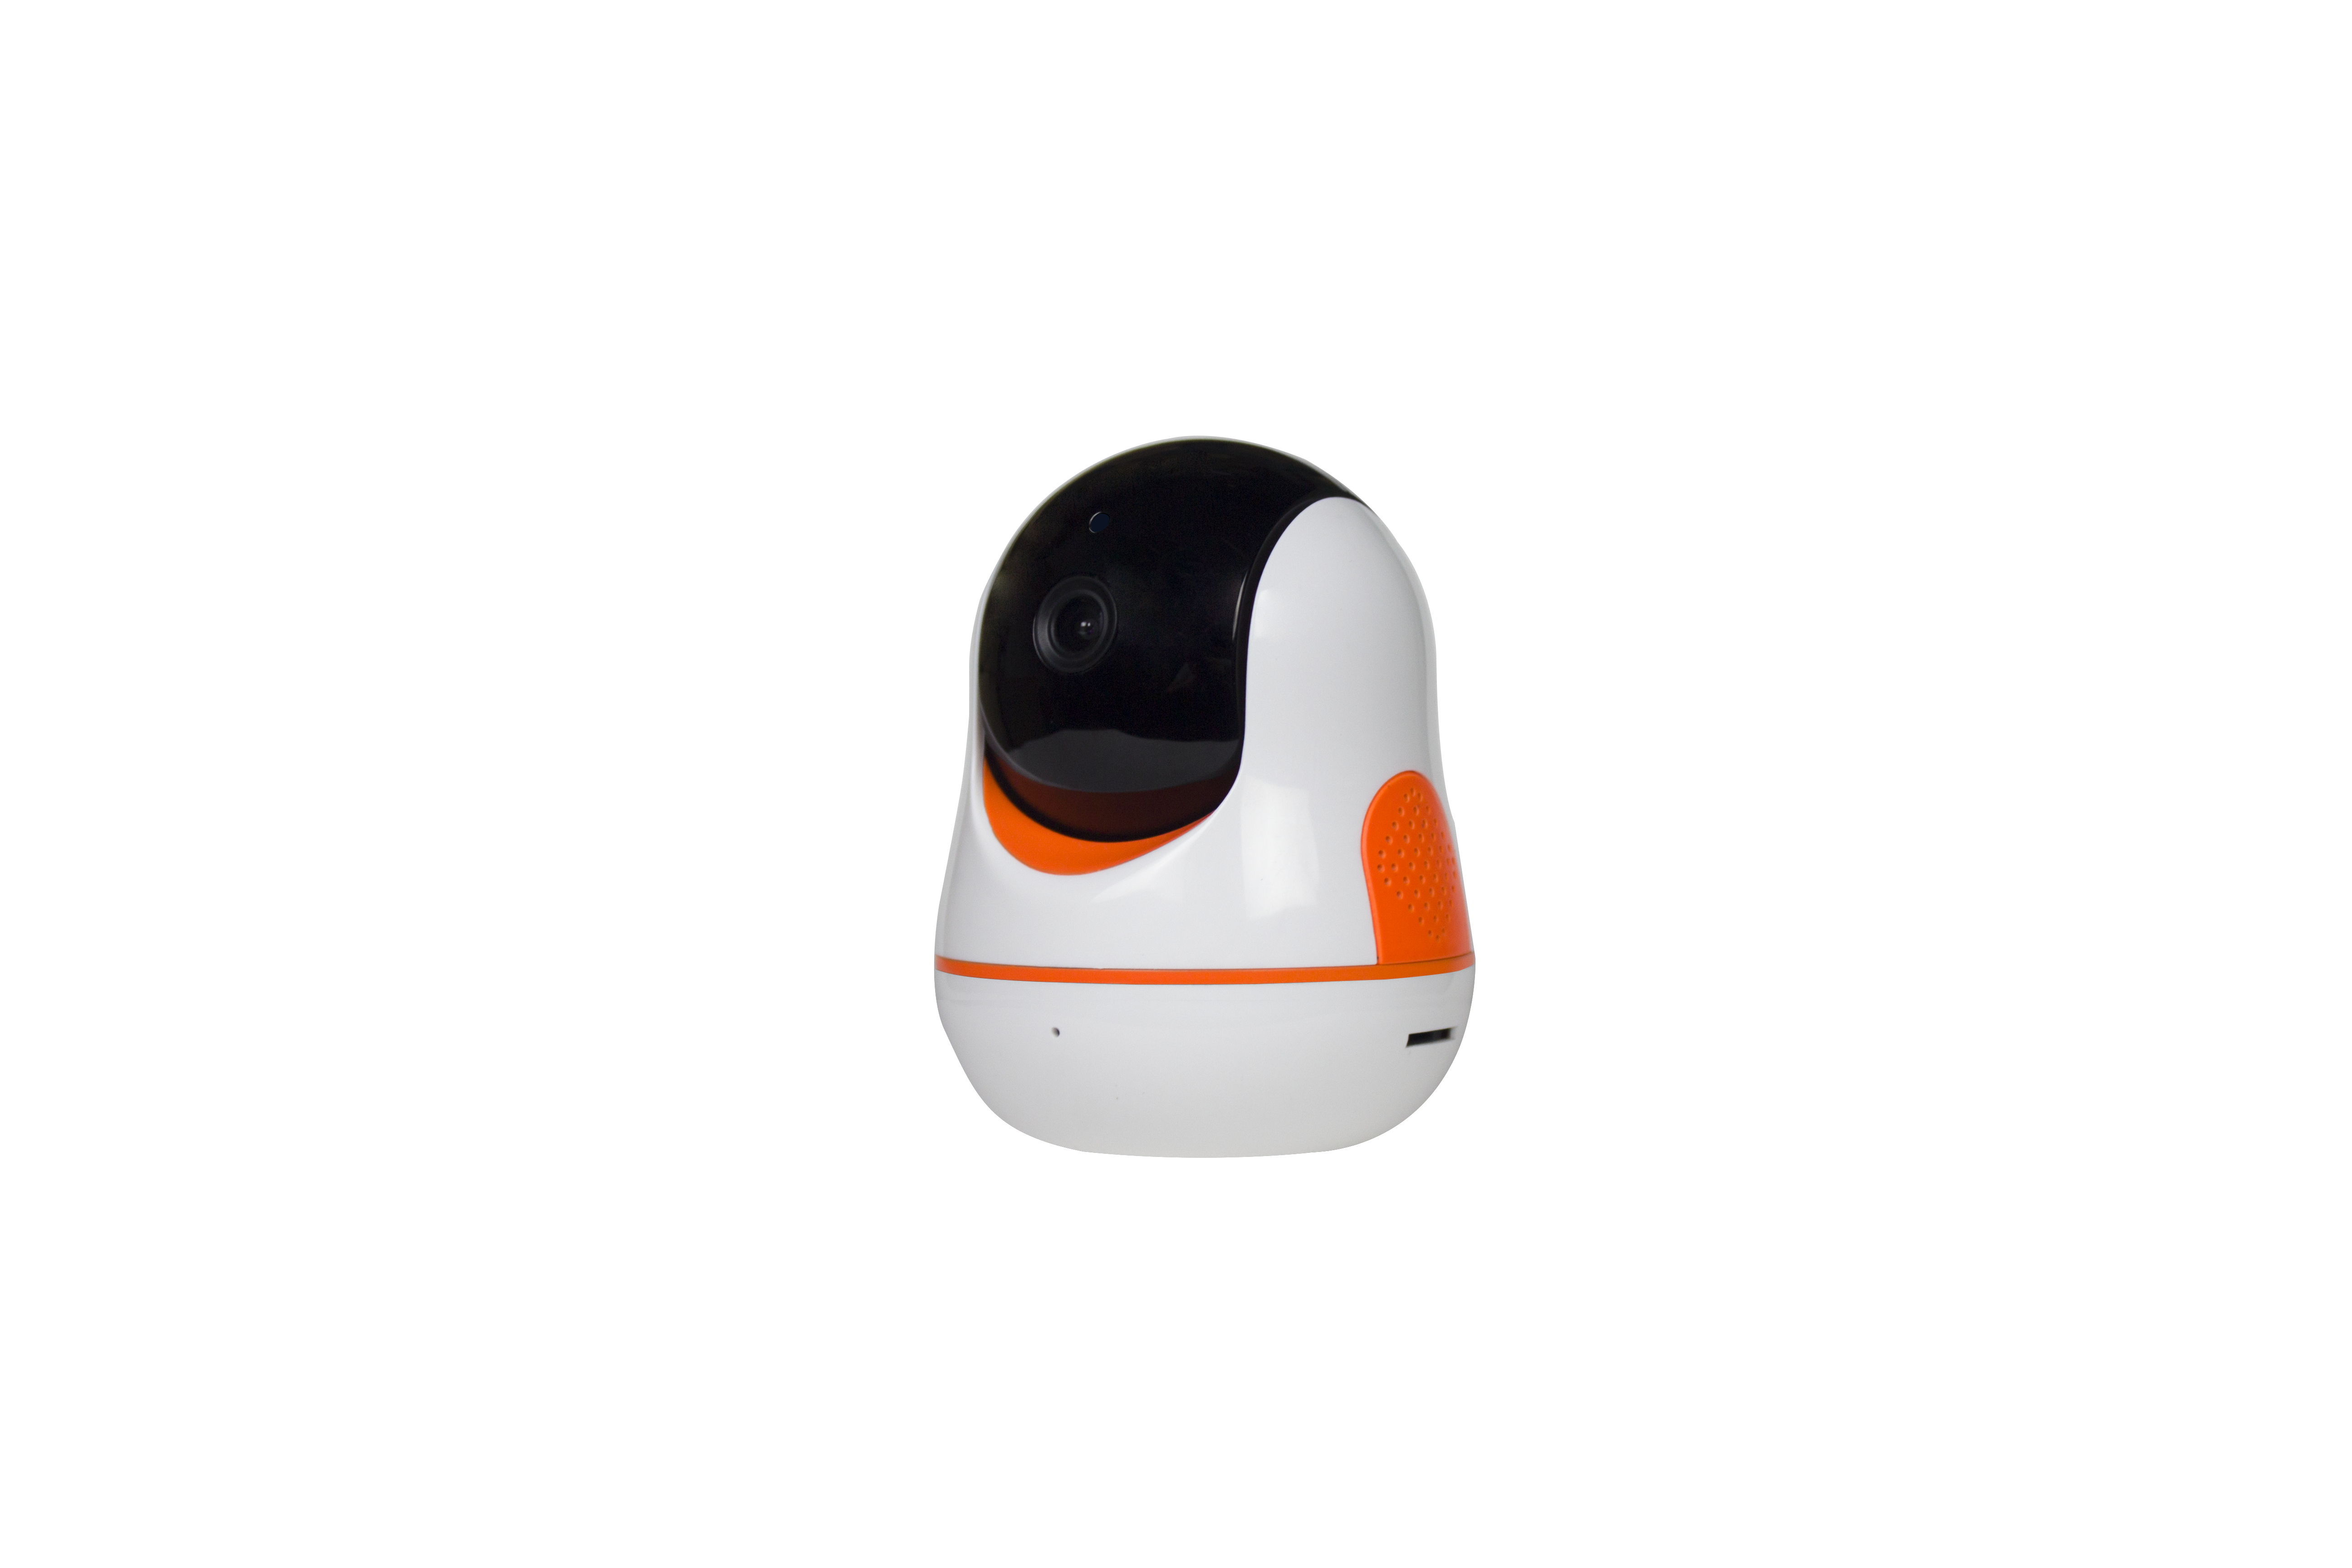 Baby IP Camera 720P/1080P ! - image Orange-2 on https://enzagroupsales.com.au